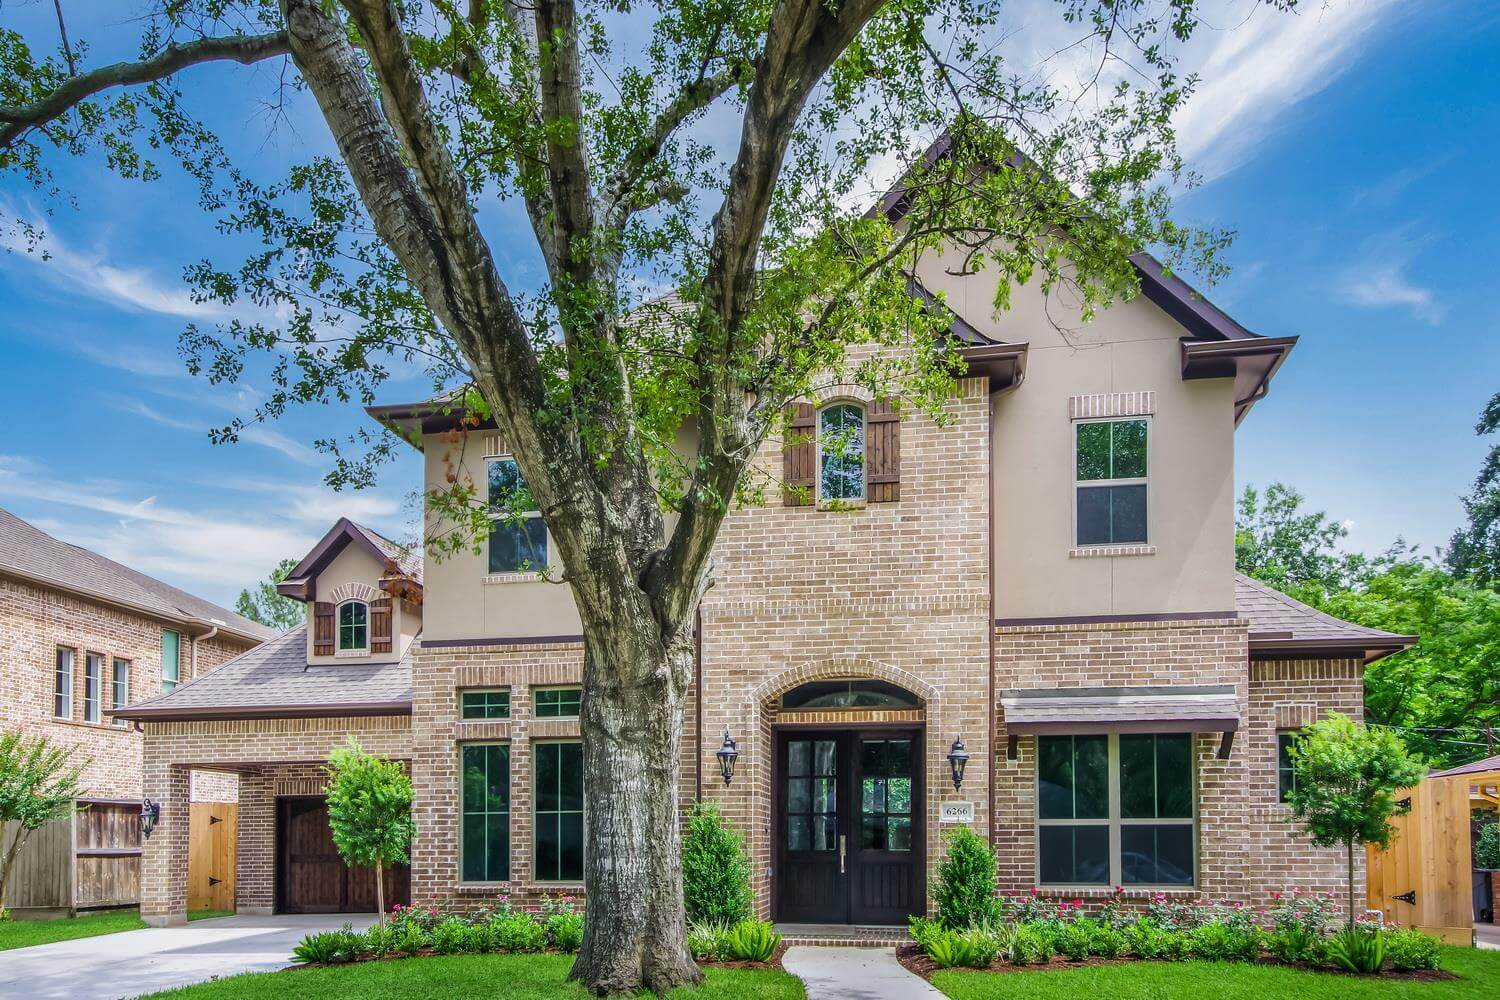 New Construction Homes & Plans in Harris County, TX | 8,228